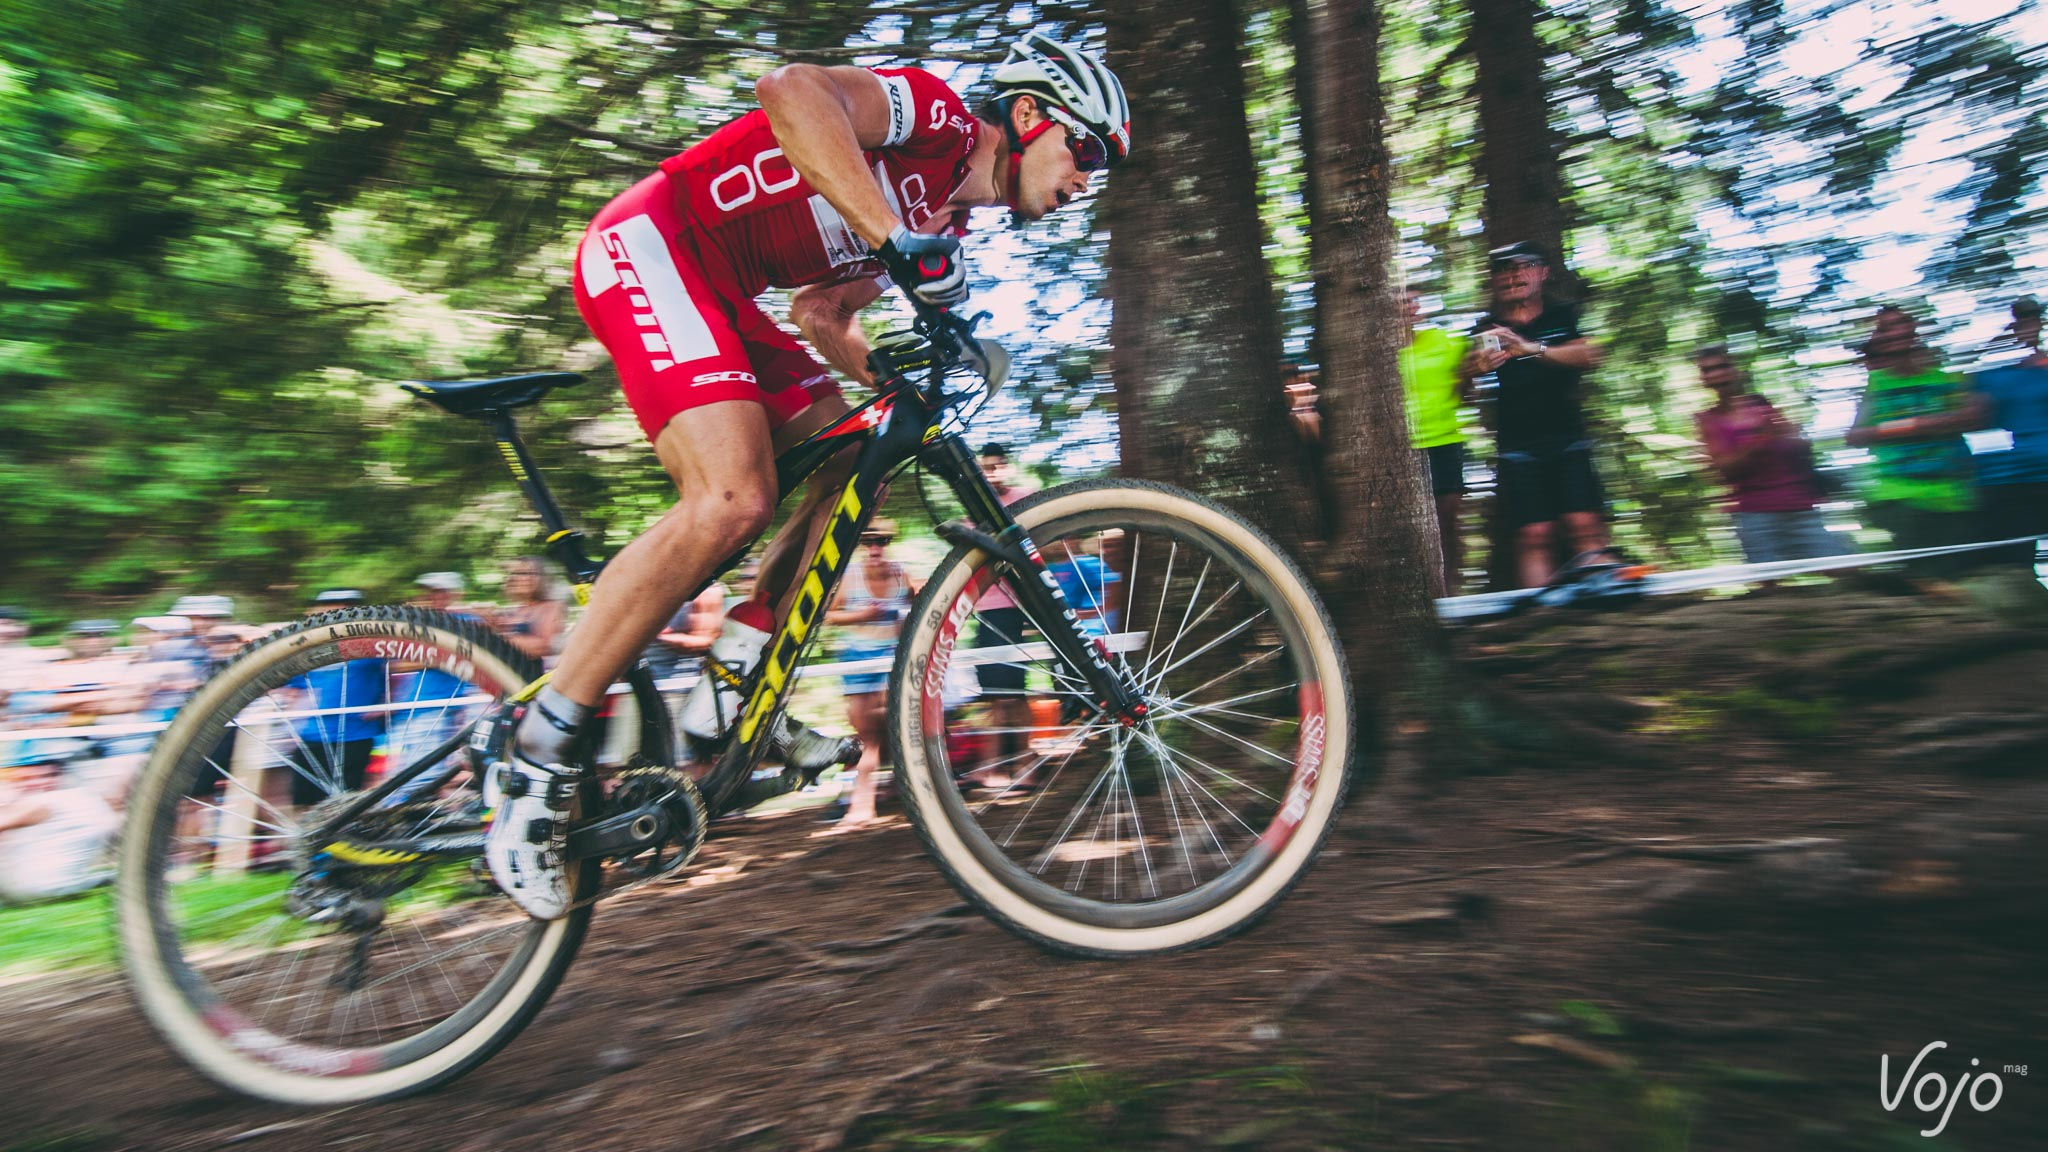 Light-WorldCup-Lenzerheide-2015-XCO-Hommes-19